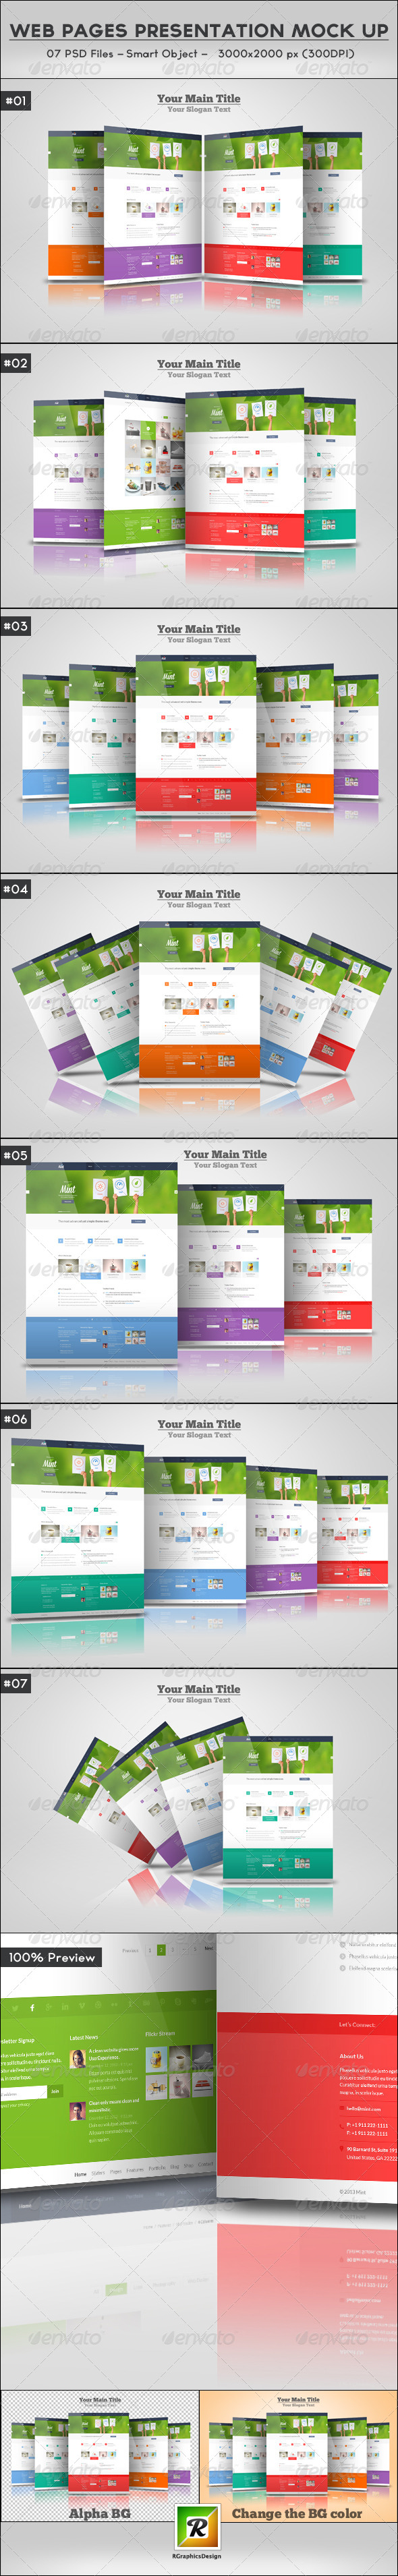 GraphicRiver Web Pages Presentation Mock Up 5784596